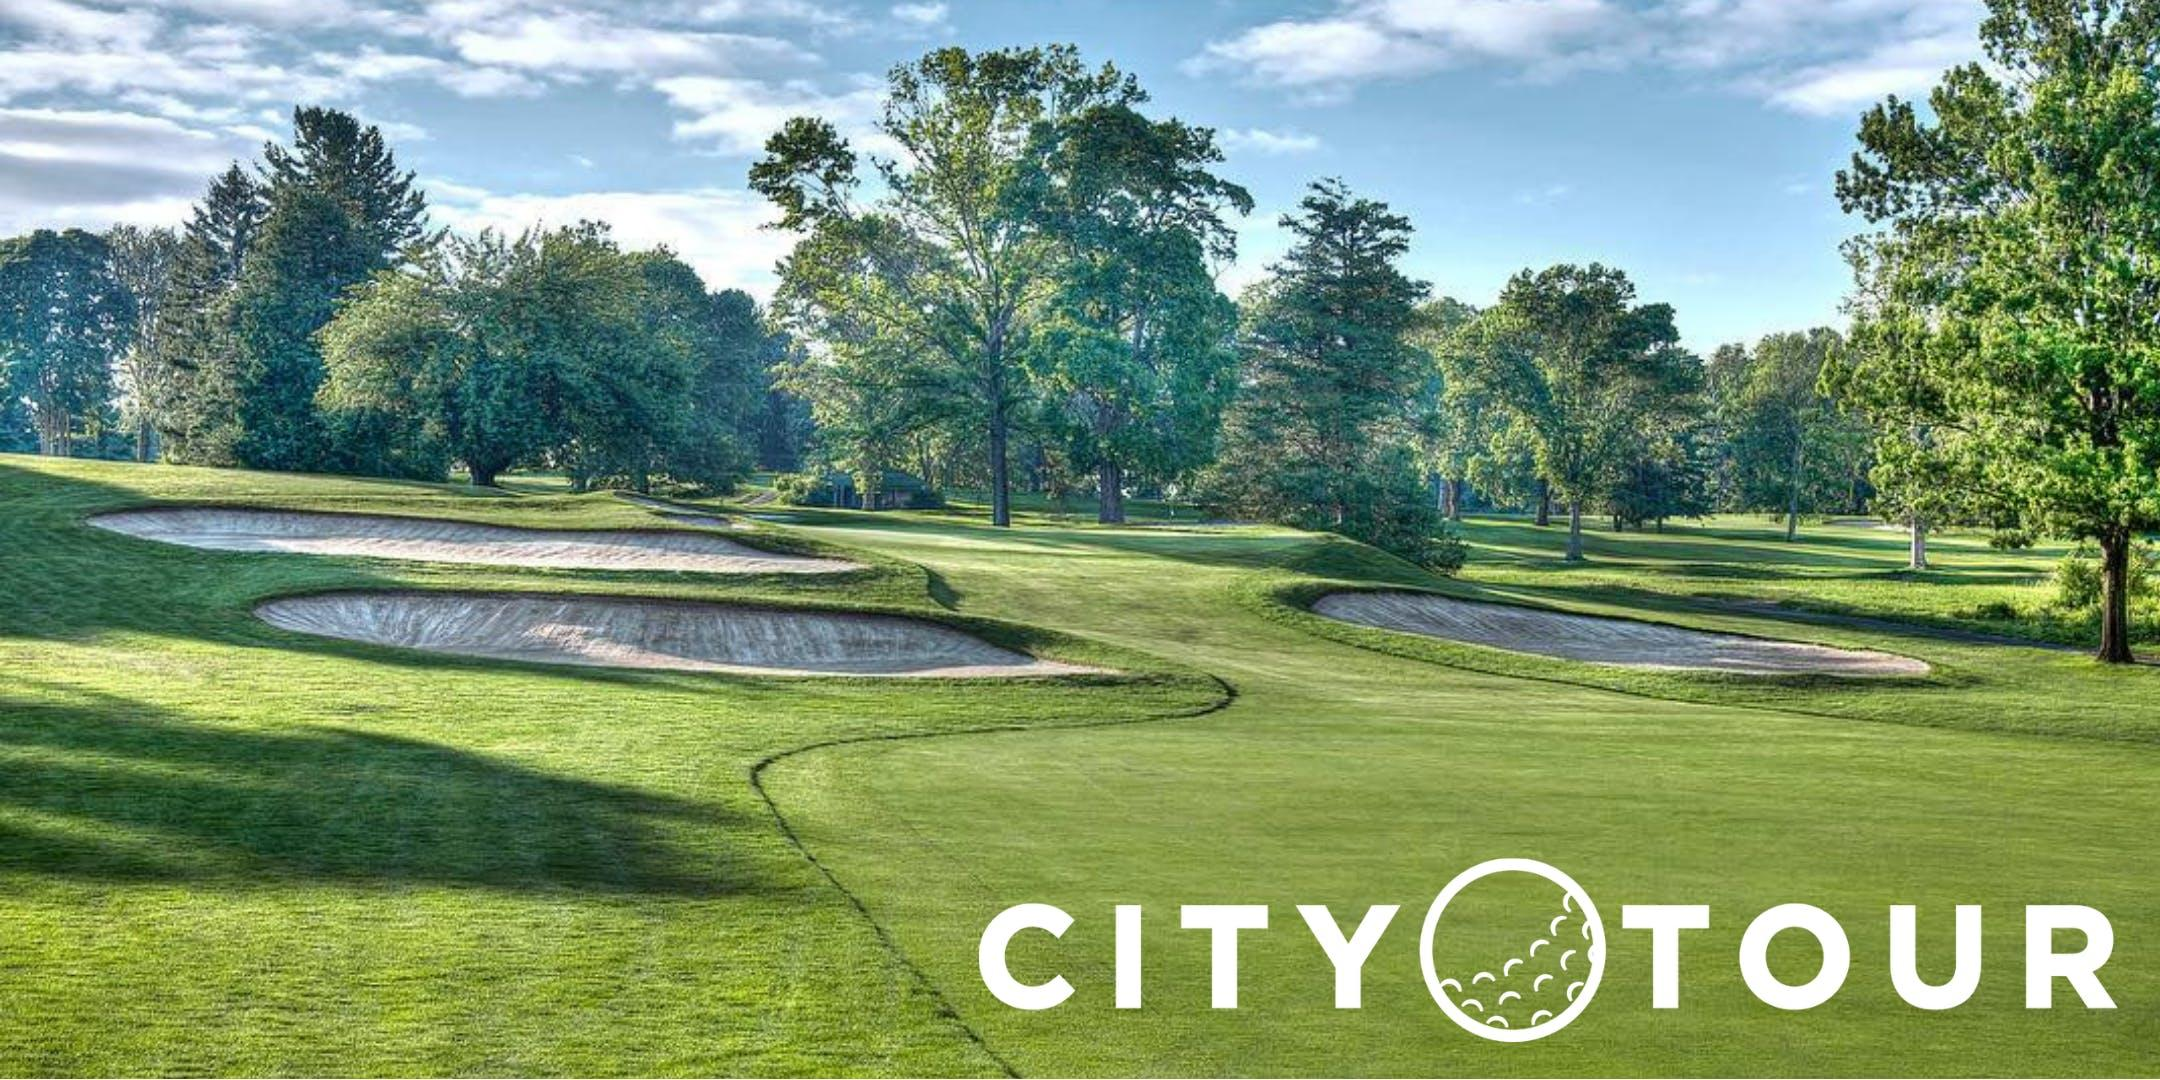 New York City Tour - Muttontown Golf & Country Club